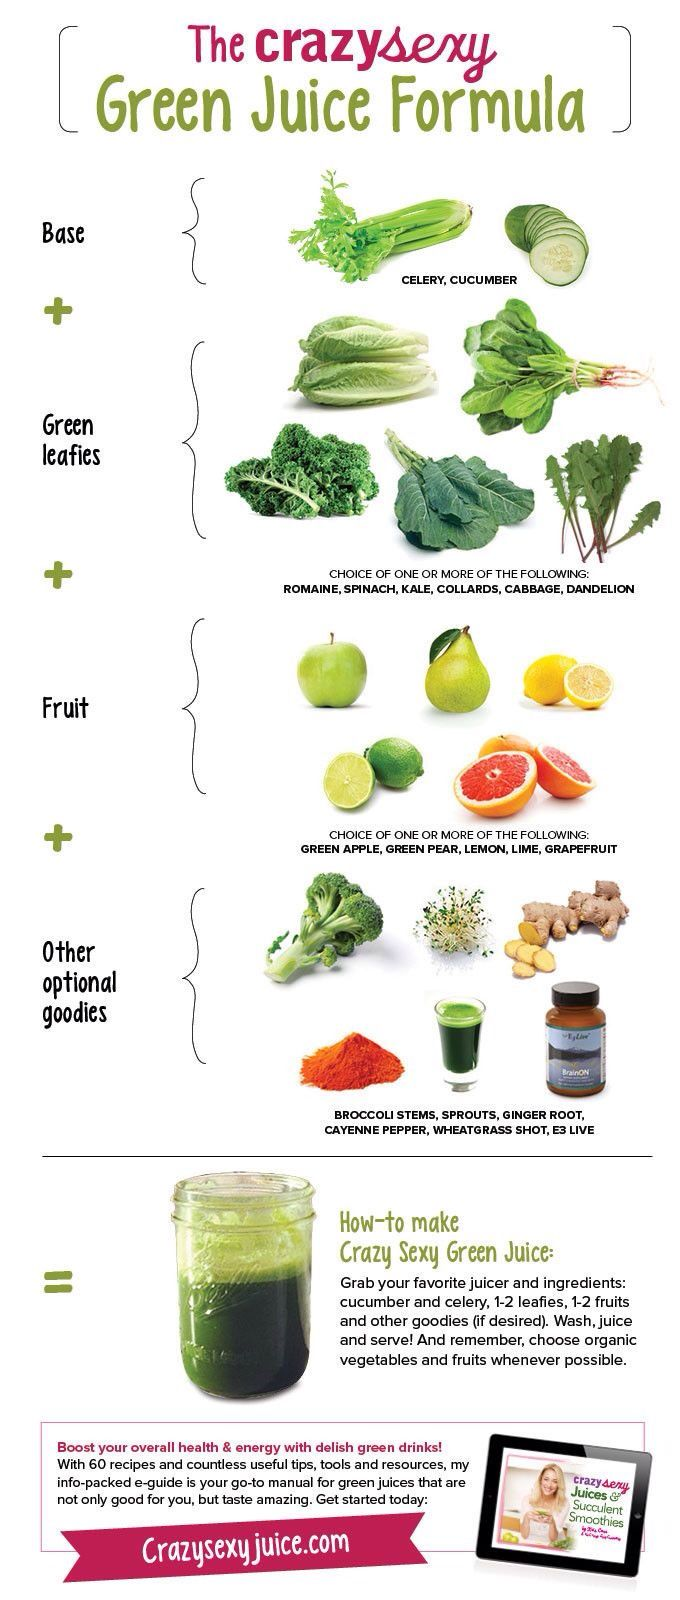 After or before drinking all those alcoholic drinks you may need this #Green #juice - #greenjuice #juicing #juicefast #juicefasting #freesh